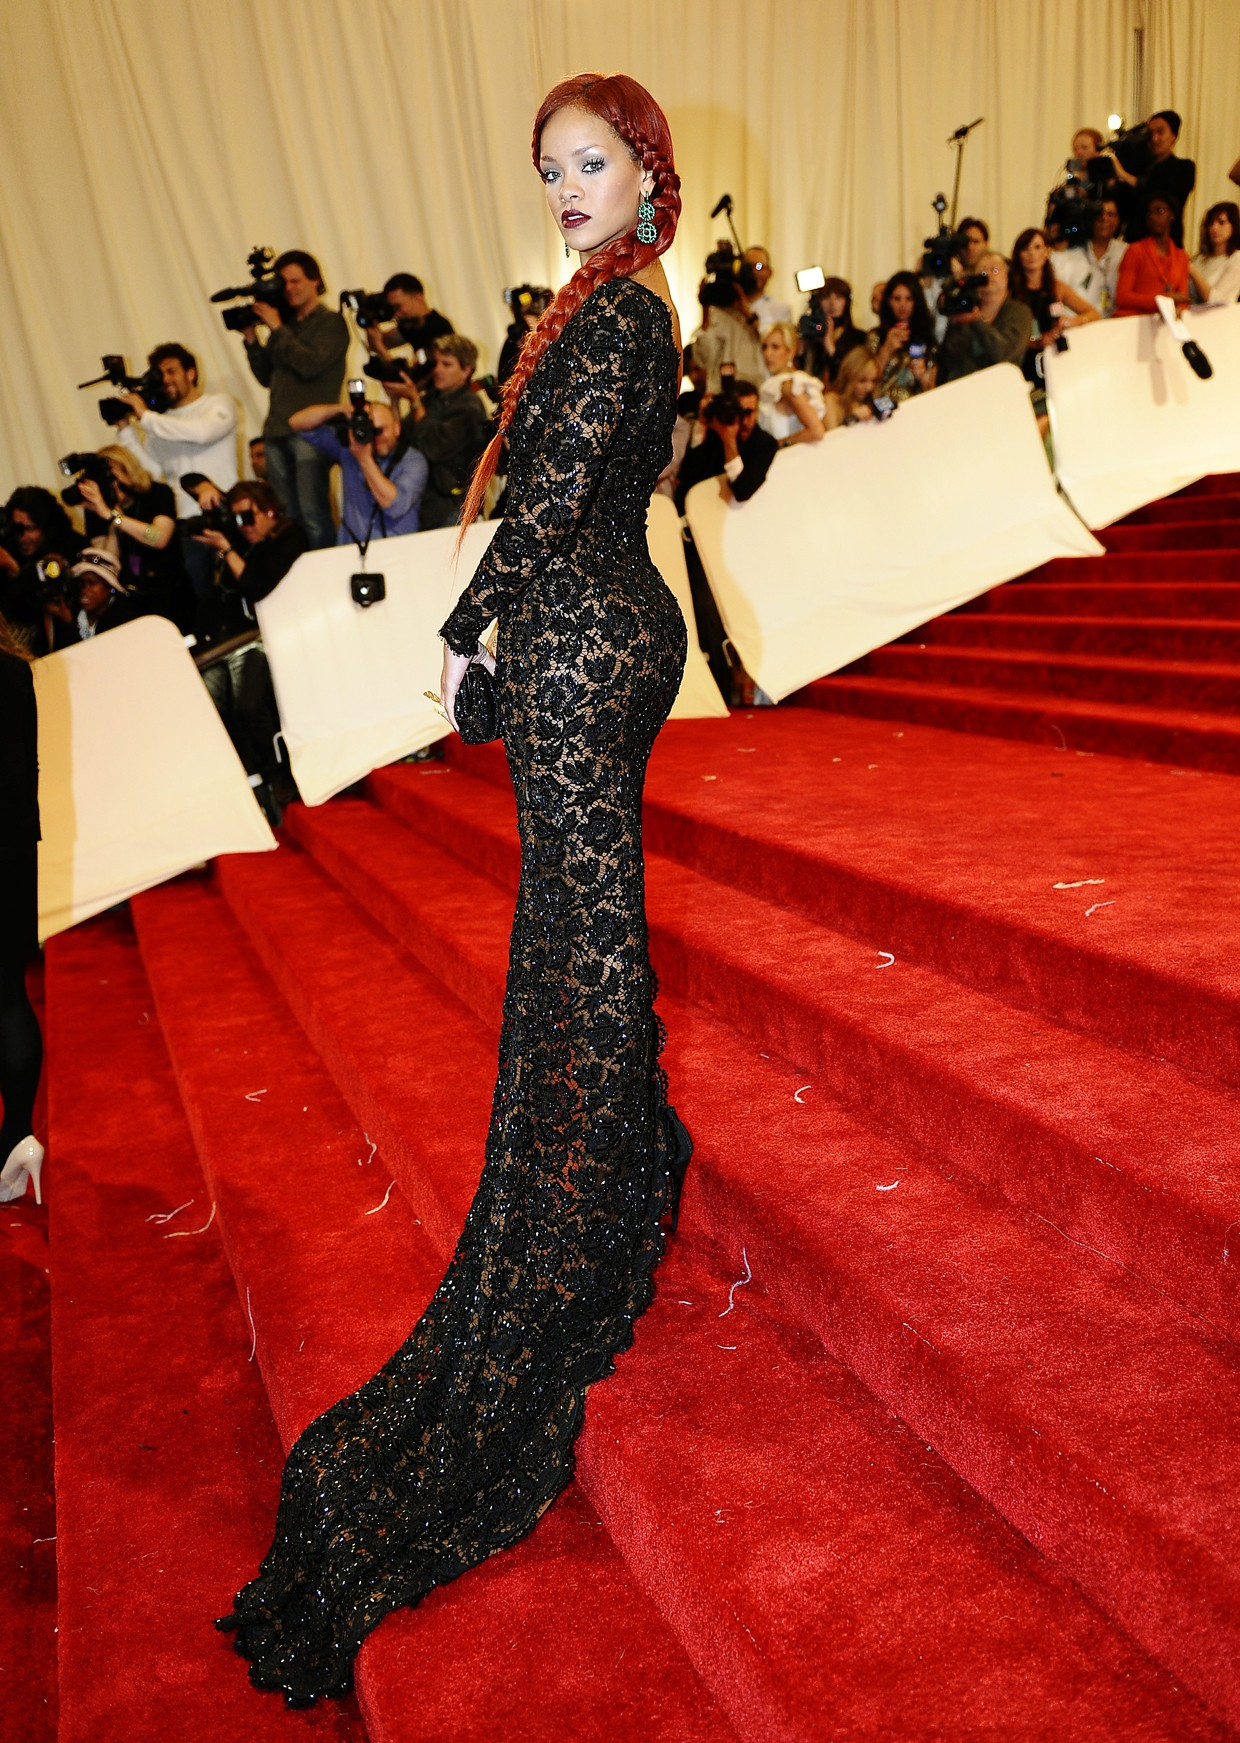 The 2020 Met Gala Theme is All About Time: Fashion and